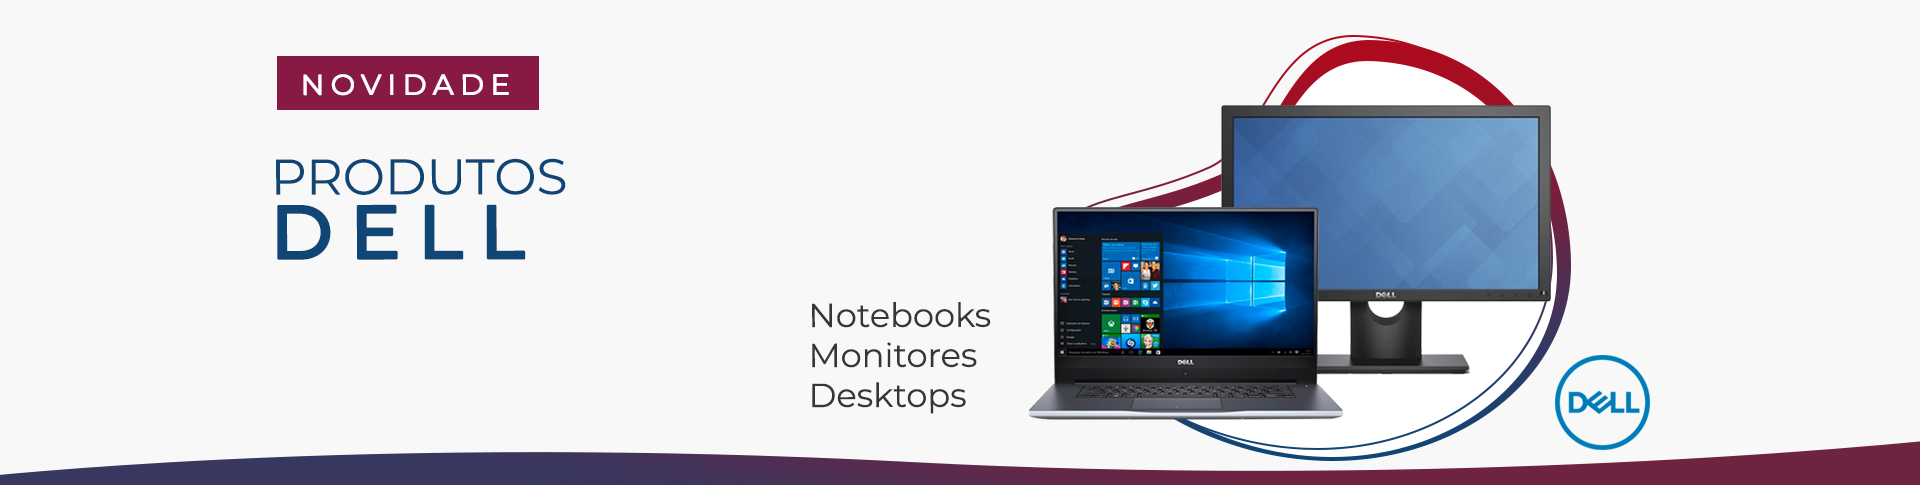 Produtos Dell - Notebook, Monitor, Desktop